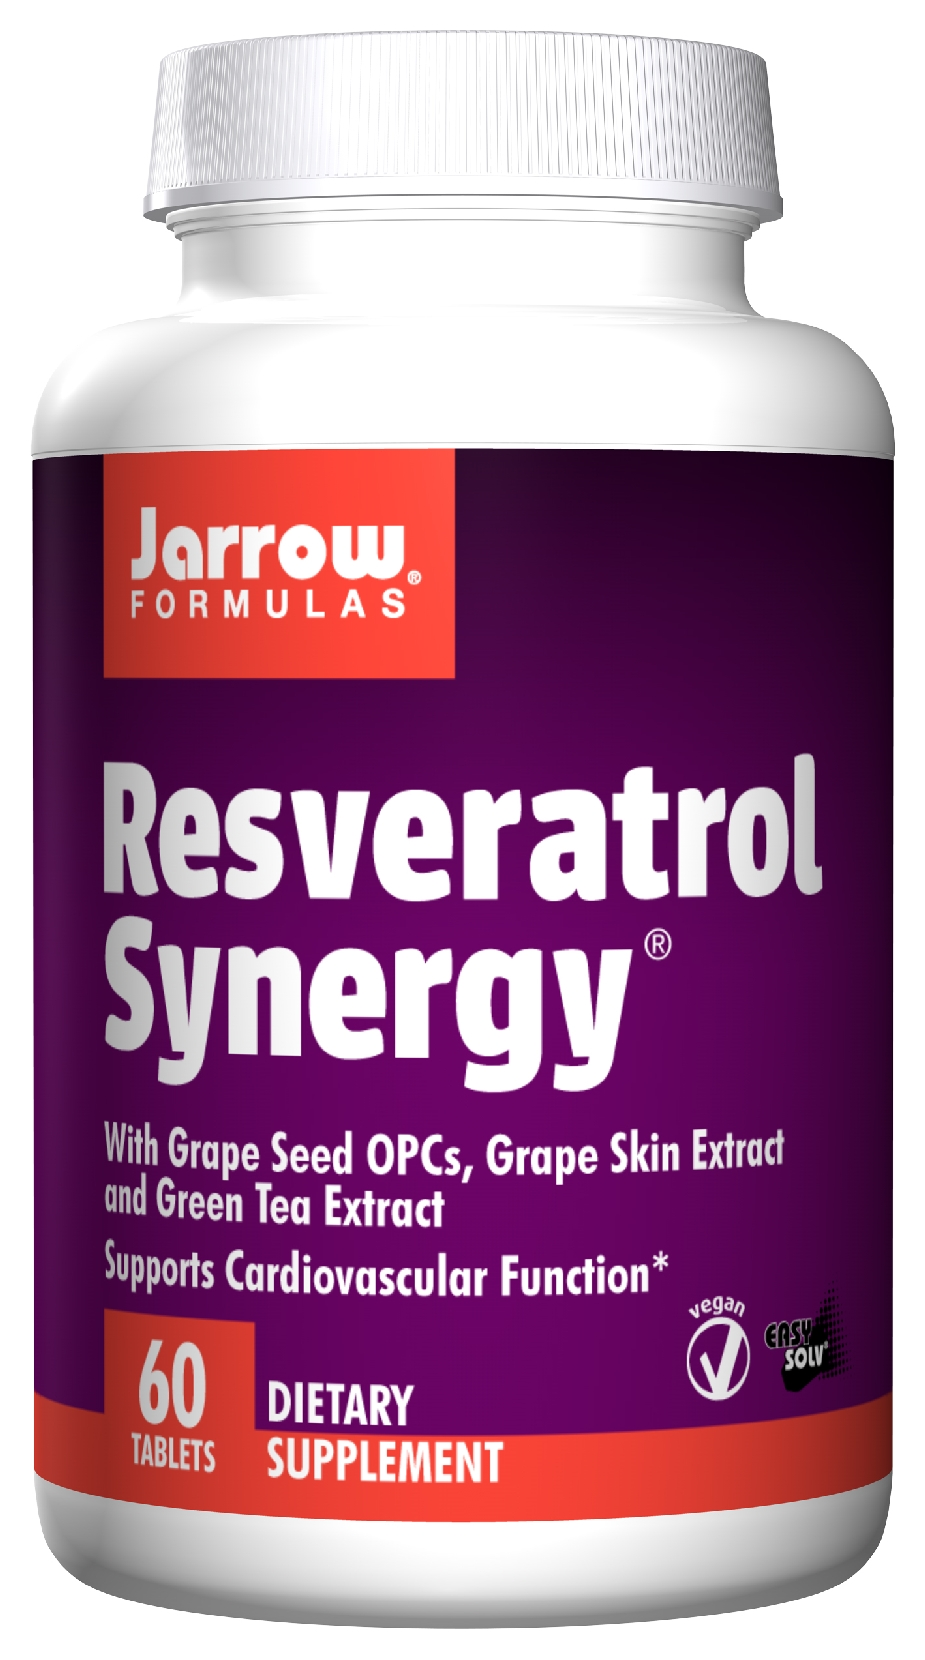 Resveratrol Synergy 60 Easy-Solv tabs by Jarrow Formulas